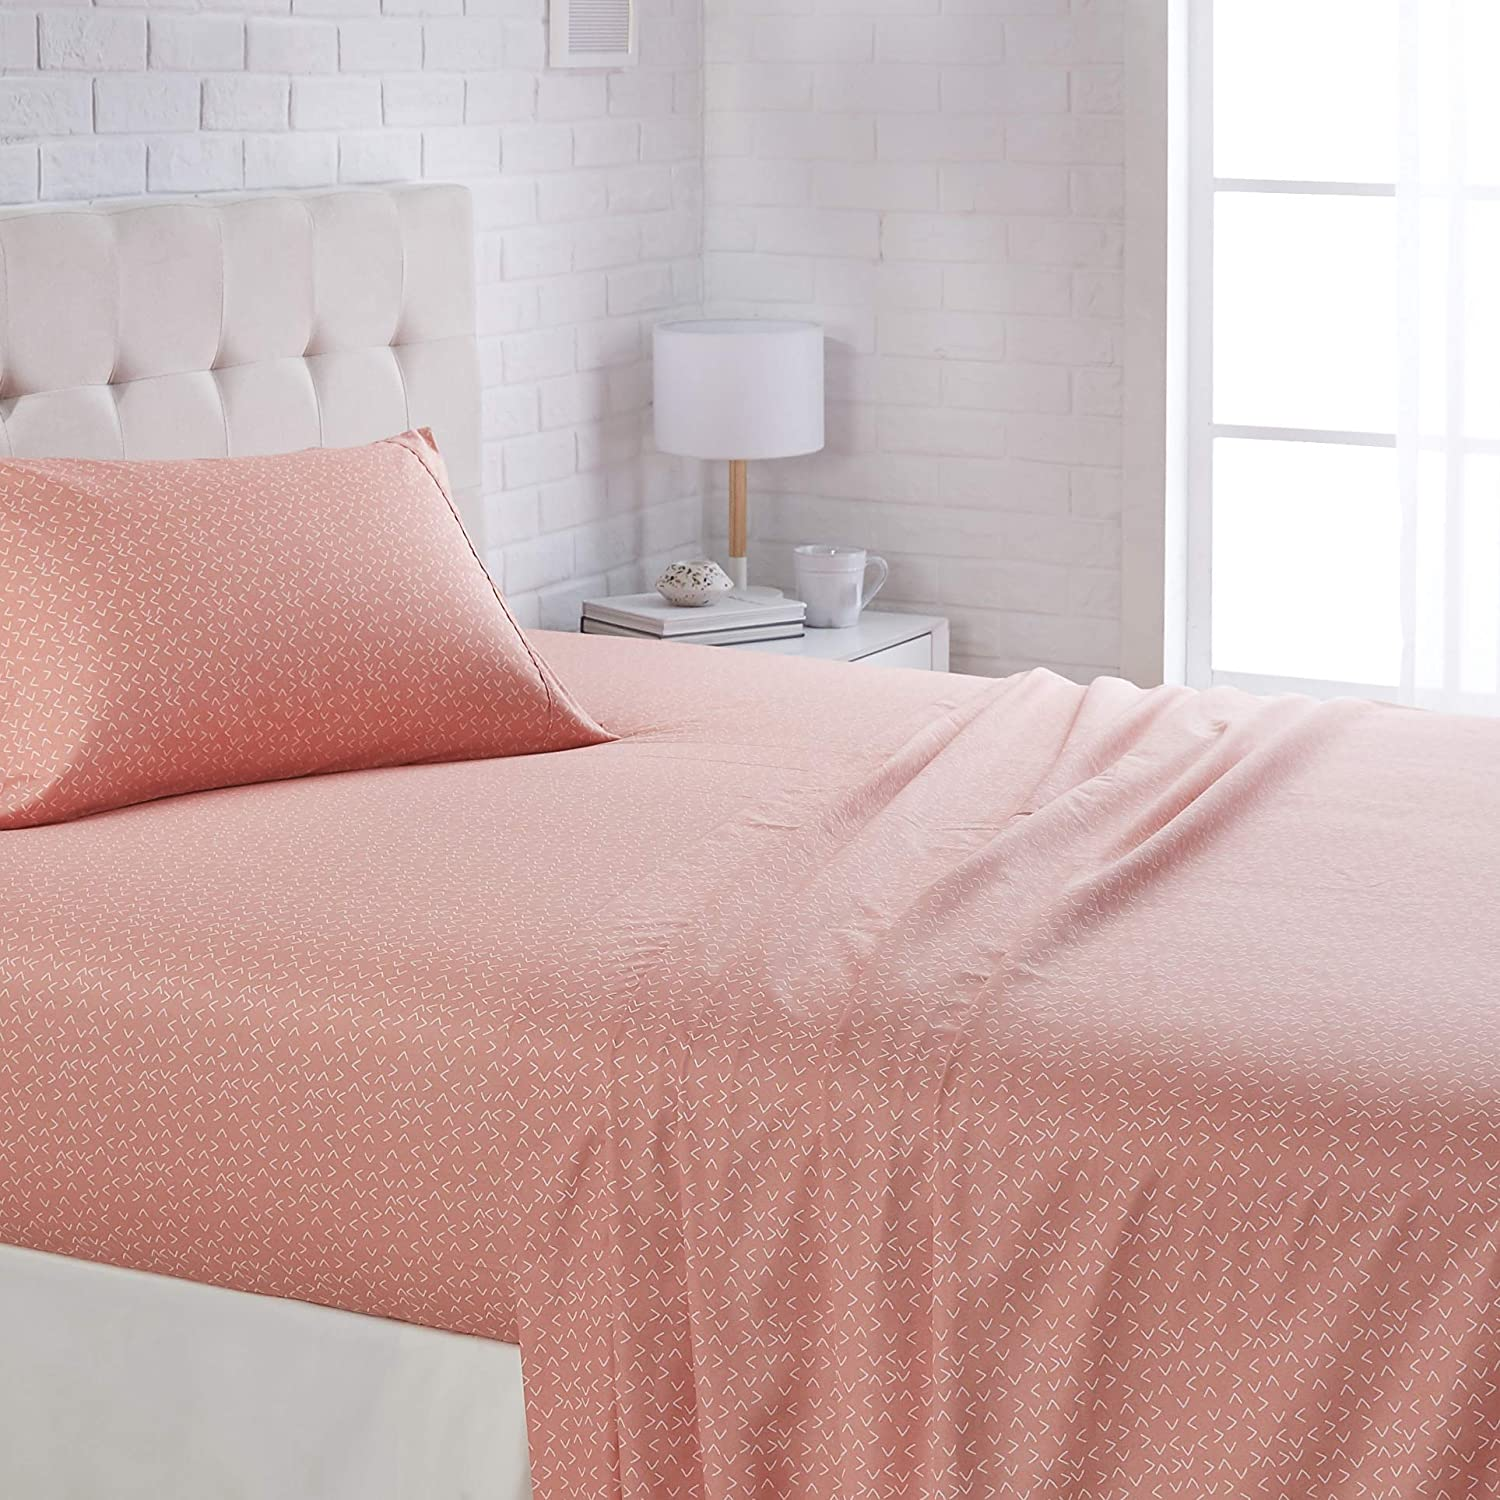 """AmazonBasics Lightweight Super Soft Easy Care Microfiber Sheet Set with 16"""" Deep Pockets - Twin, Peachy Coral Arrows"""